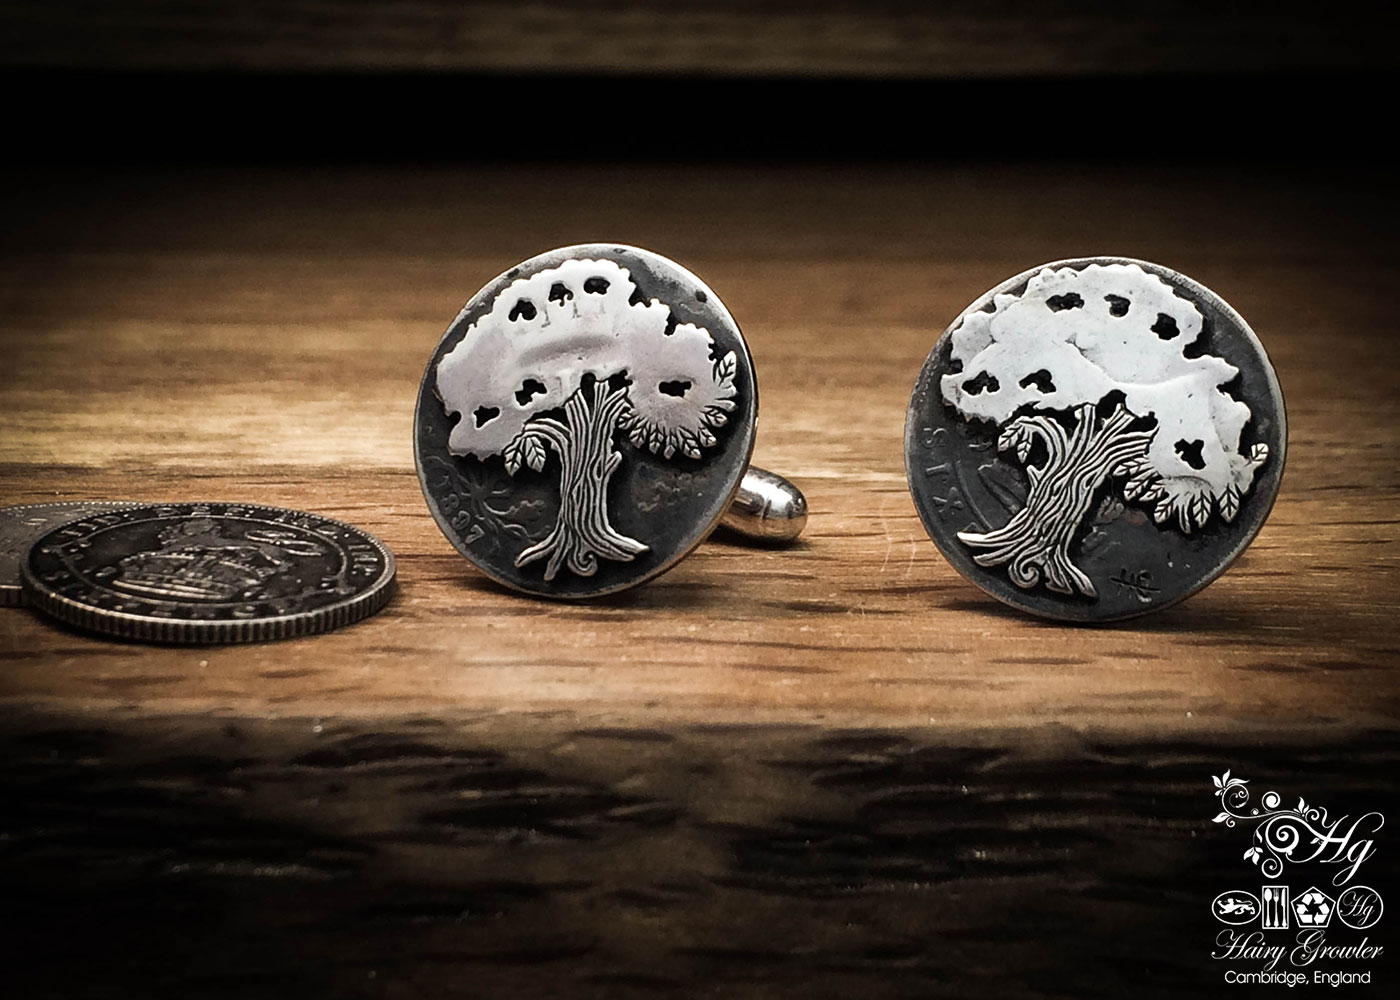 Oak tree cufflinks handcrafted and recycled from sterling silver sixpence coins